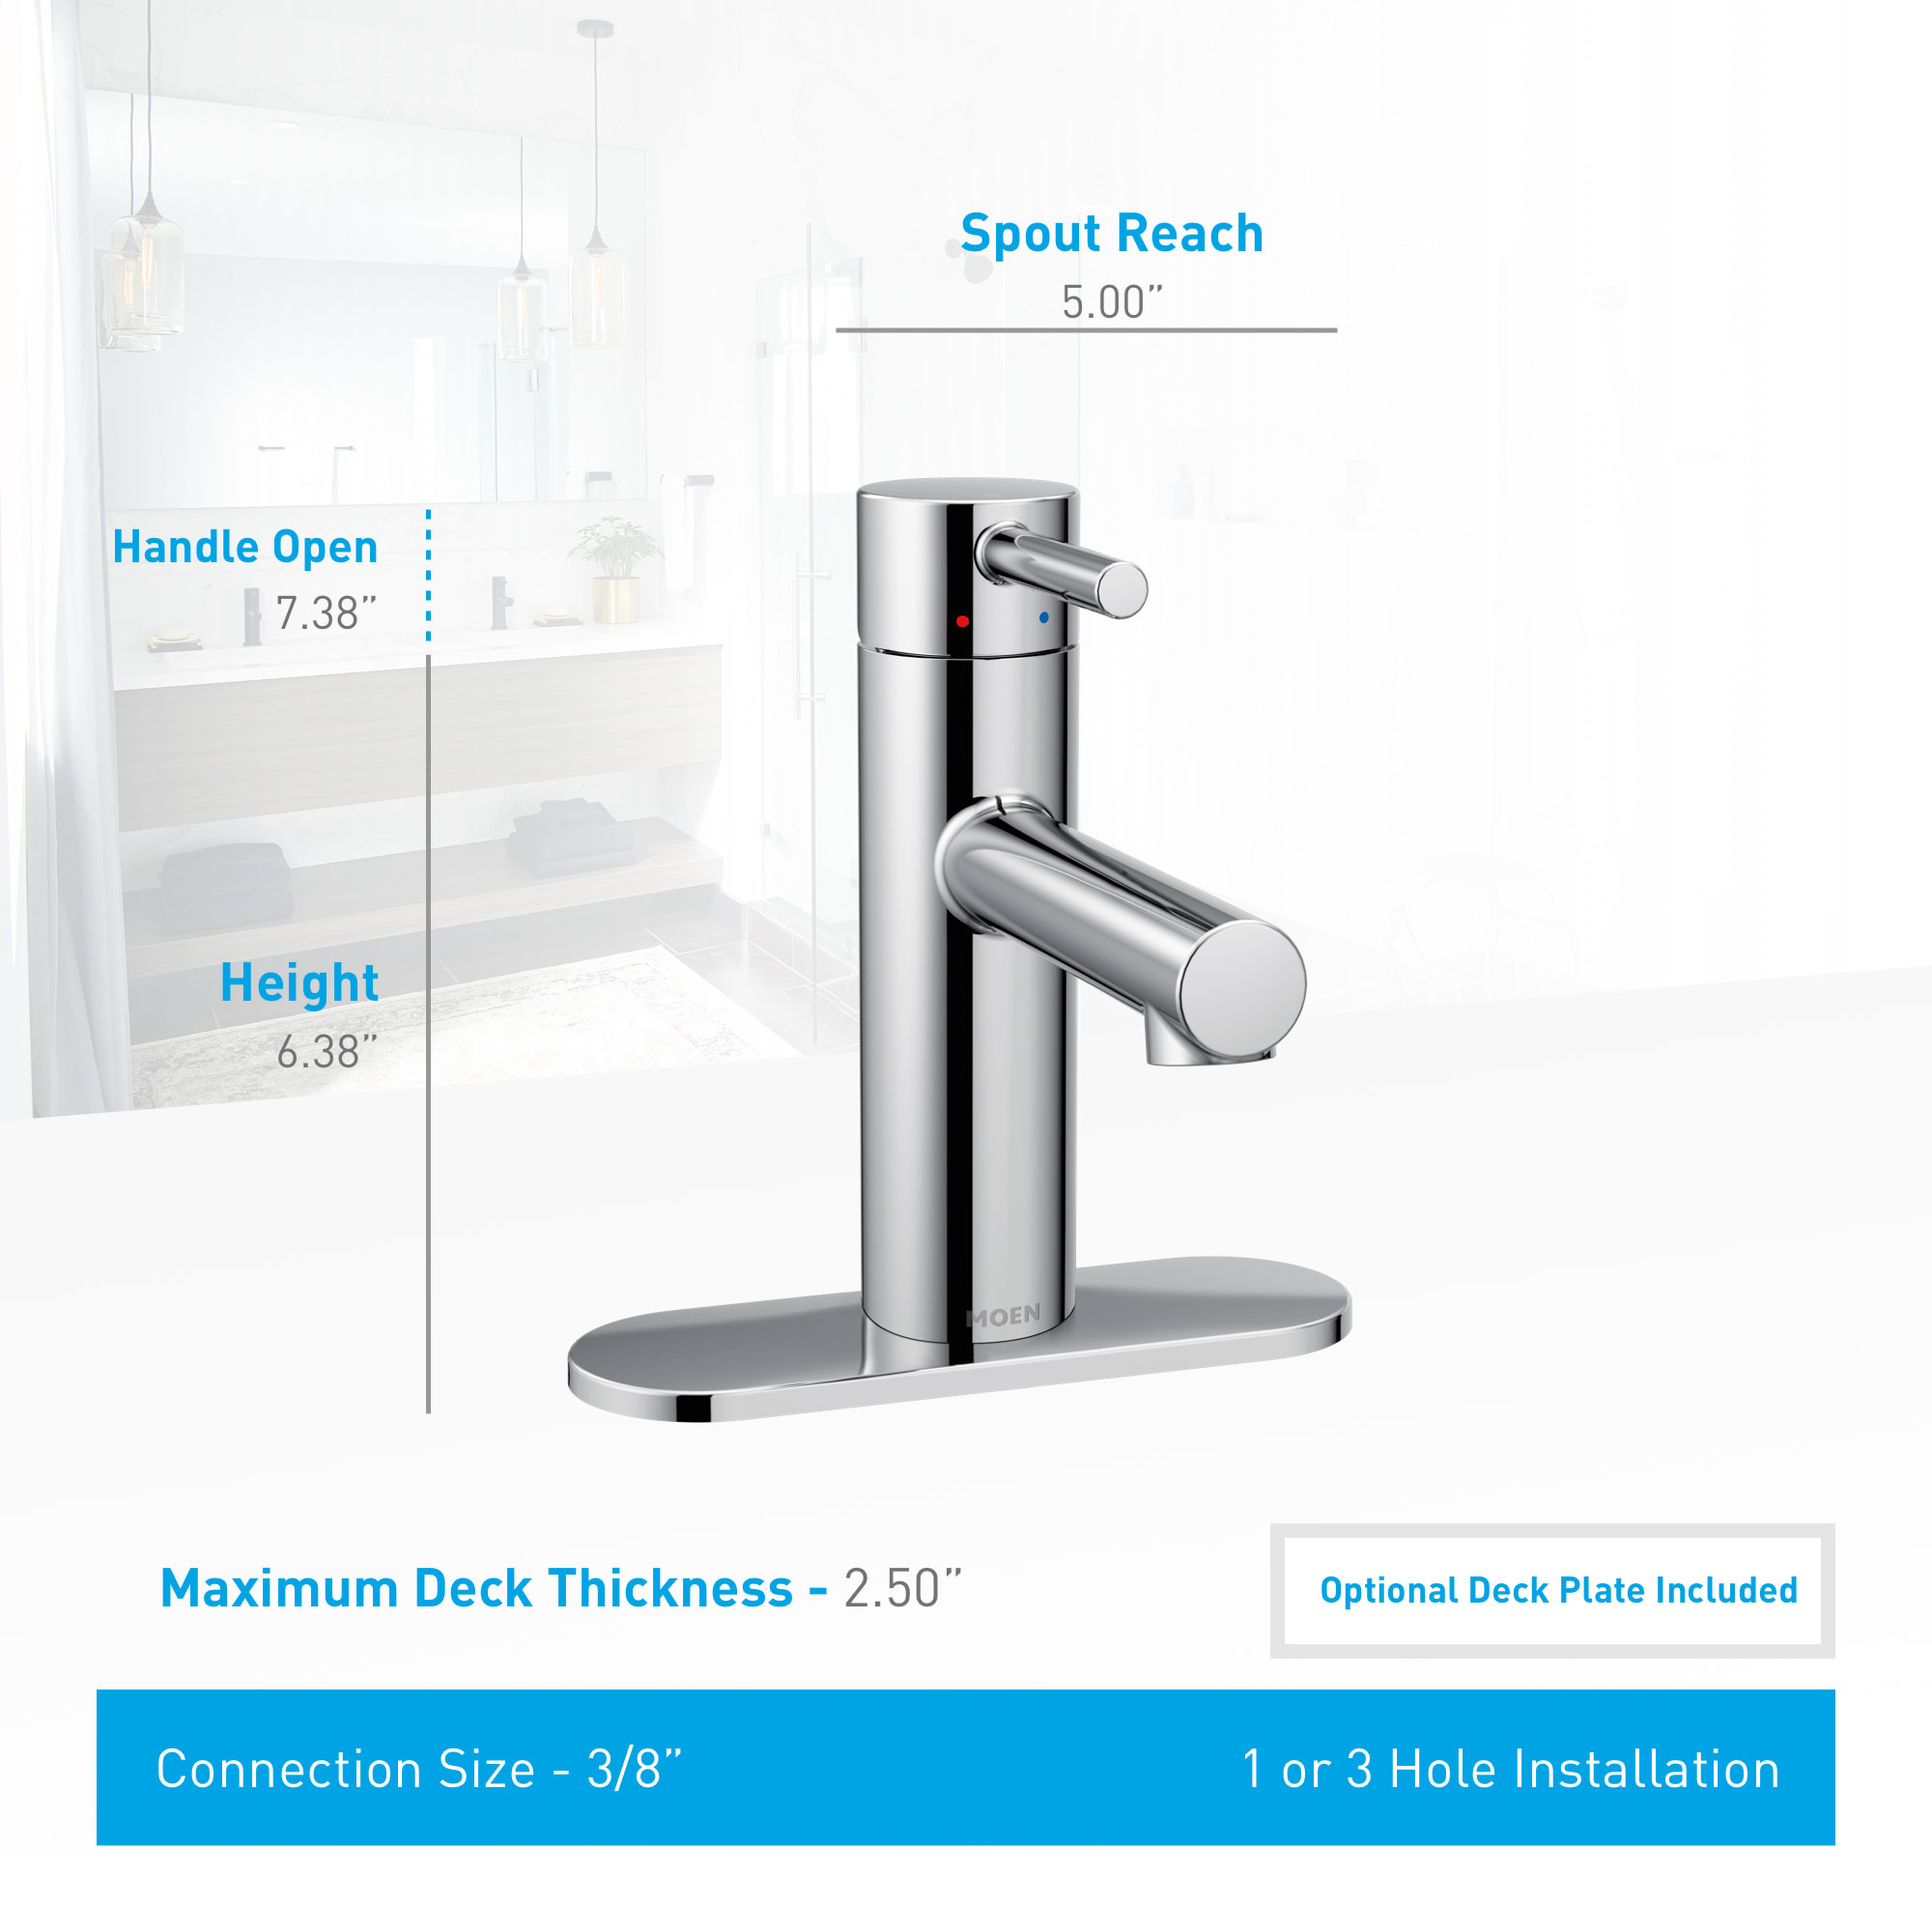 Product Specifications Image